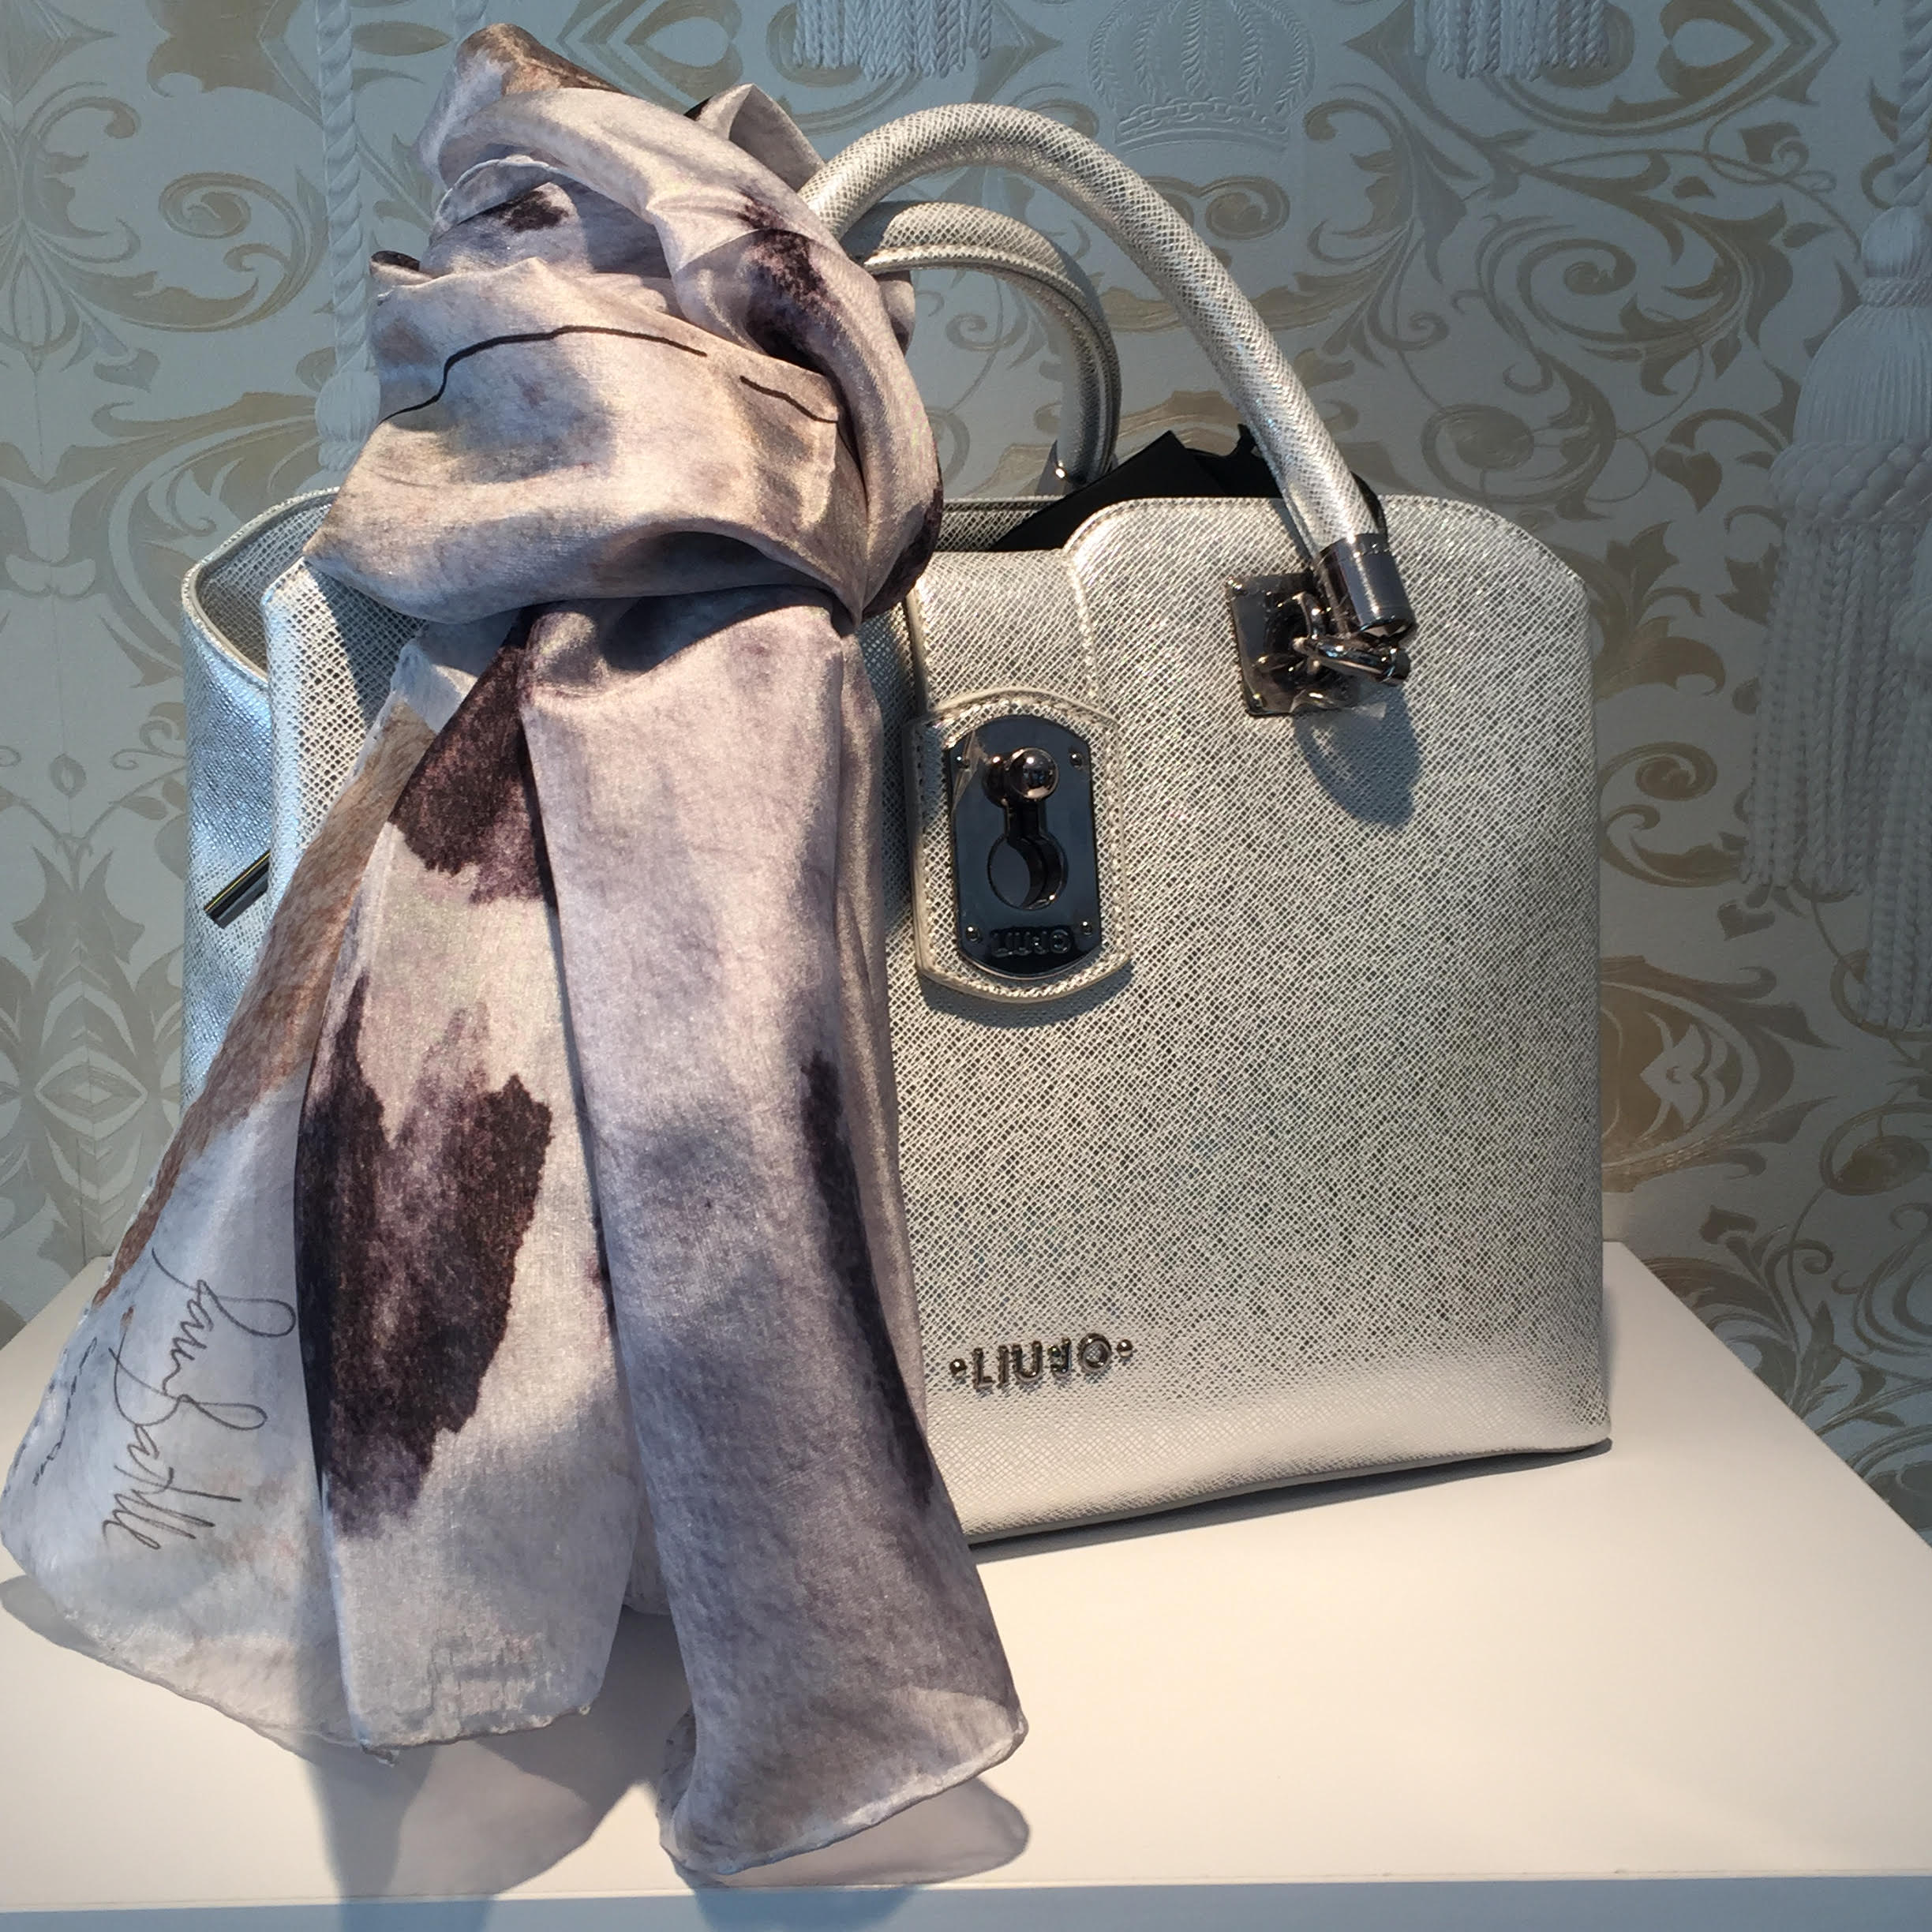 Croce Luxury Design shop, where you can find DABA DISSENY silk scarves, carré squares and ties.